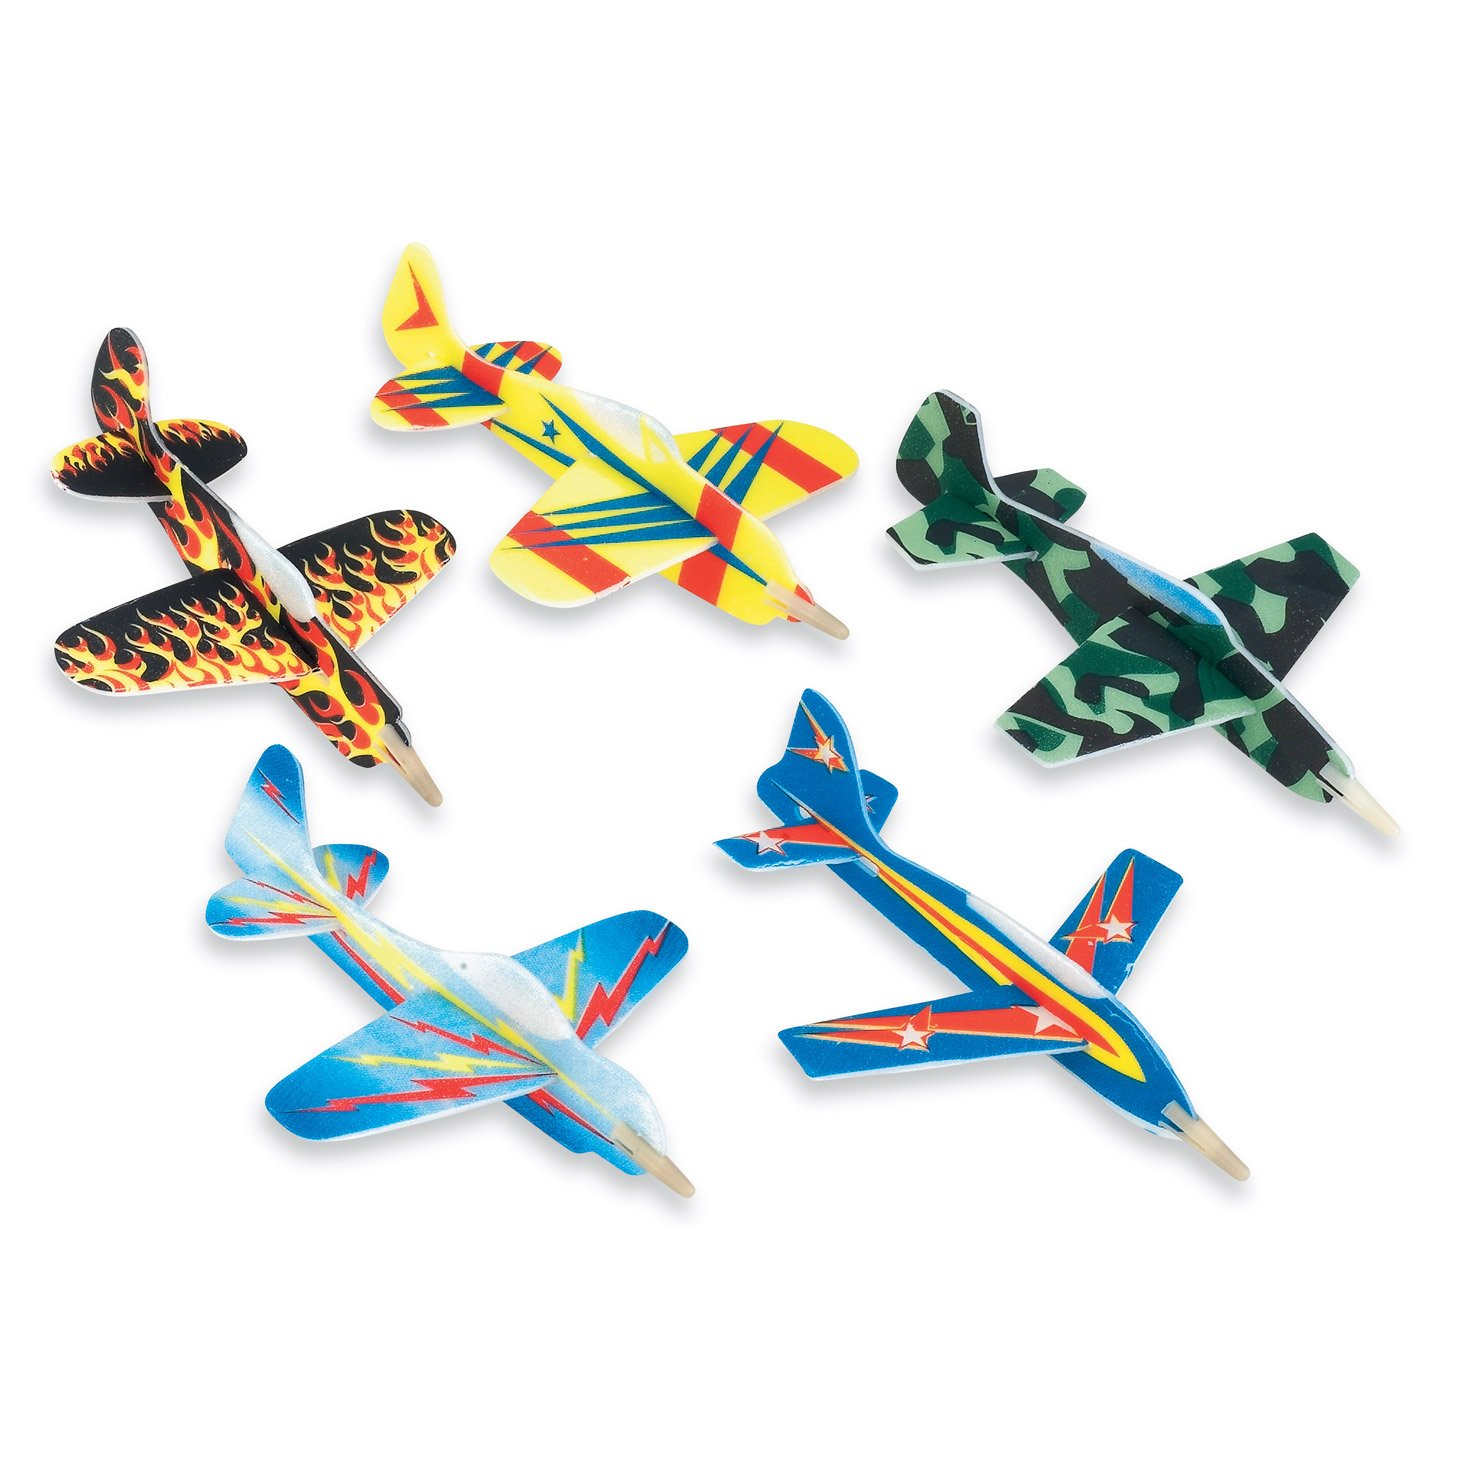 SmileMakers Mini Glider - 144 per Pack